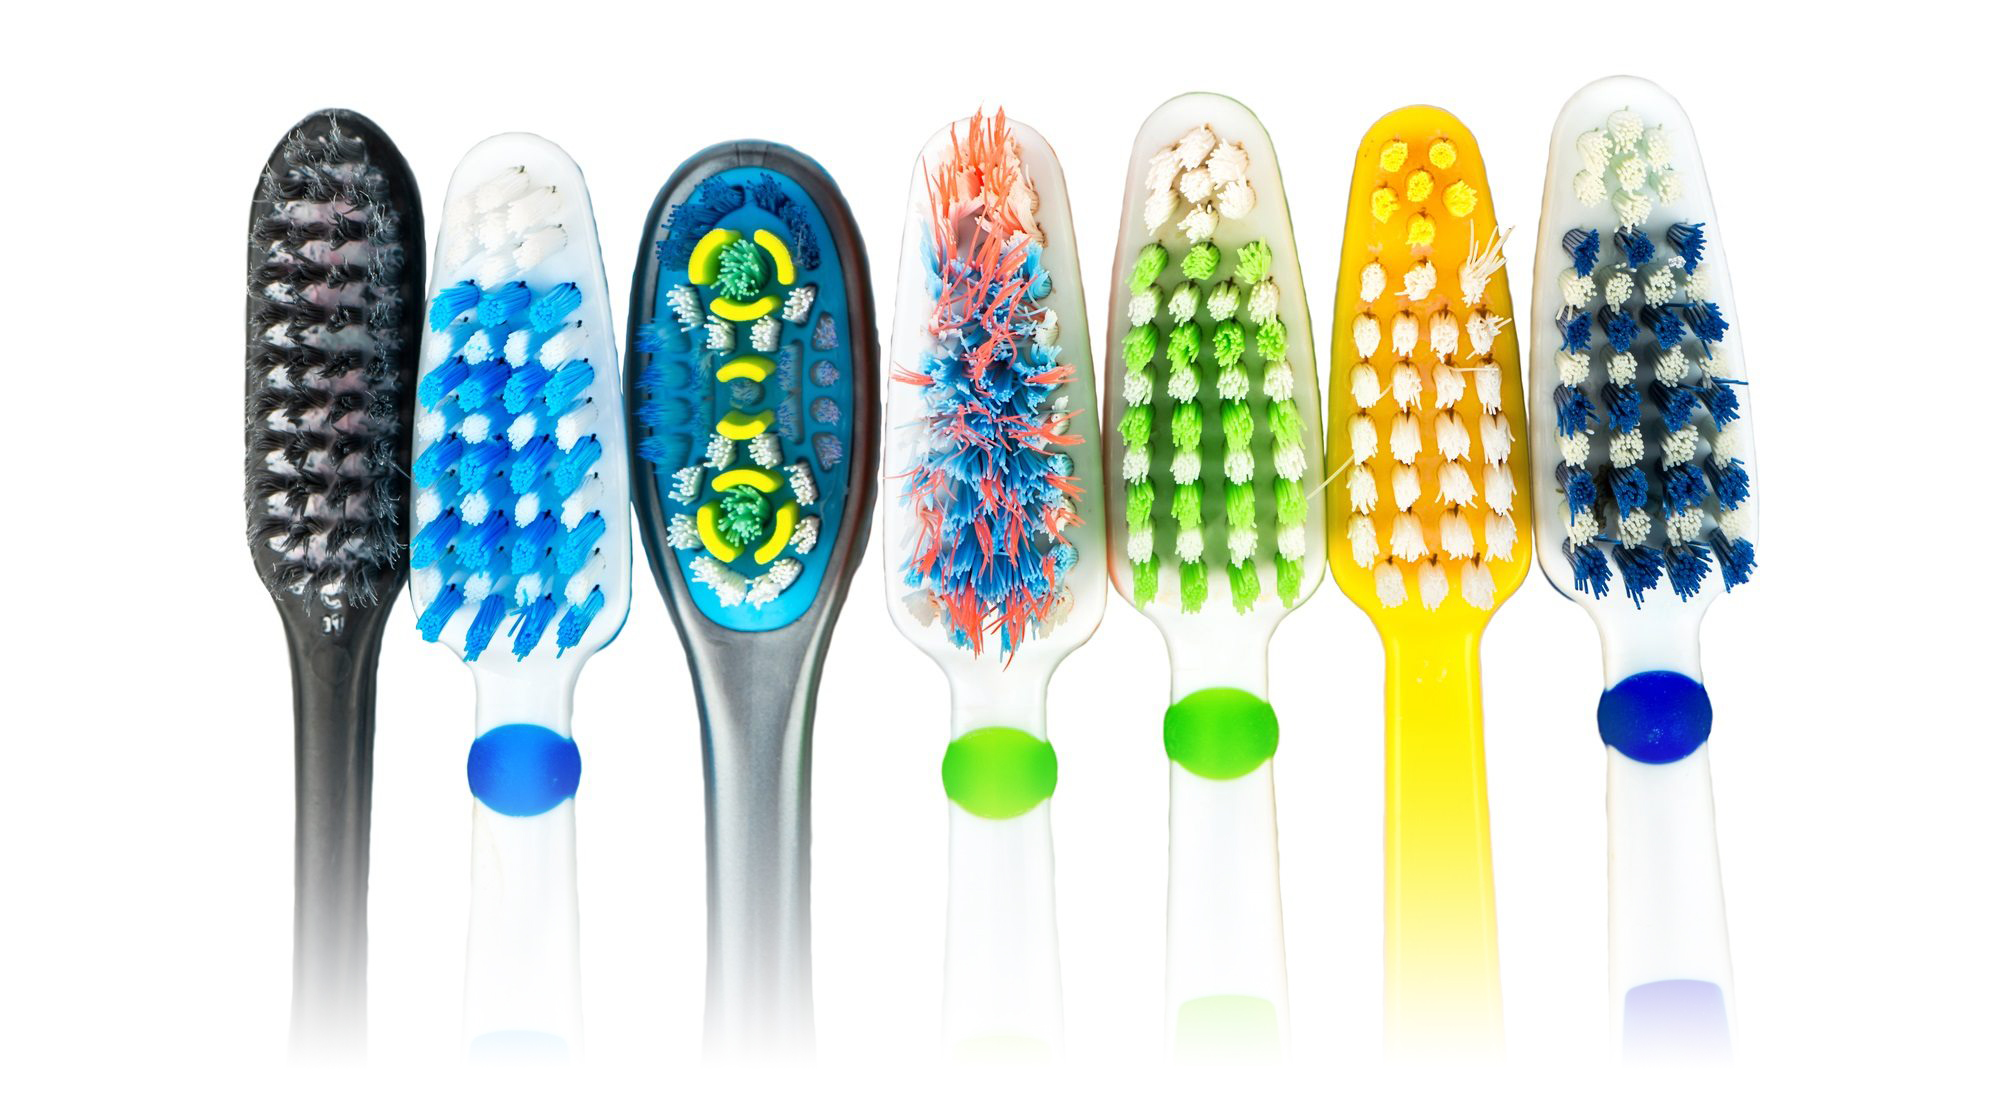 Different types of toothbrushes with bristles